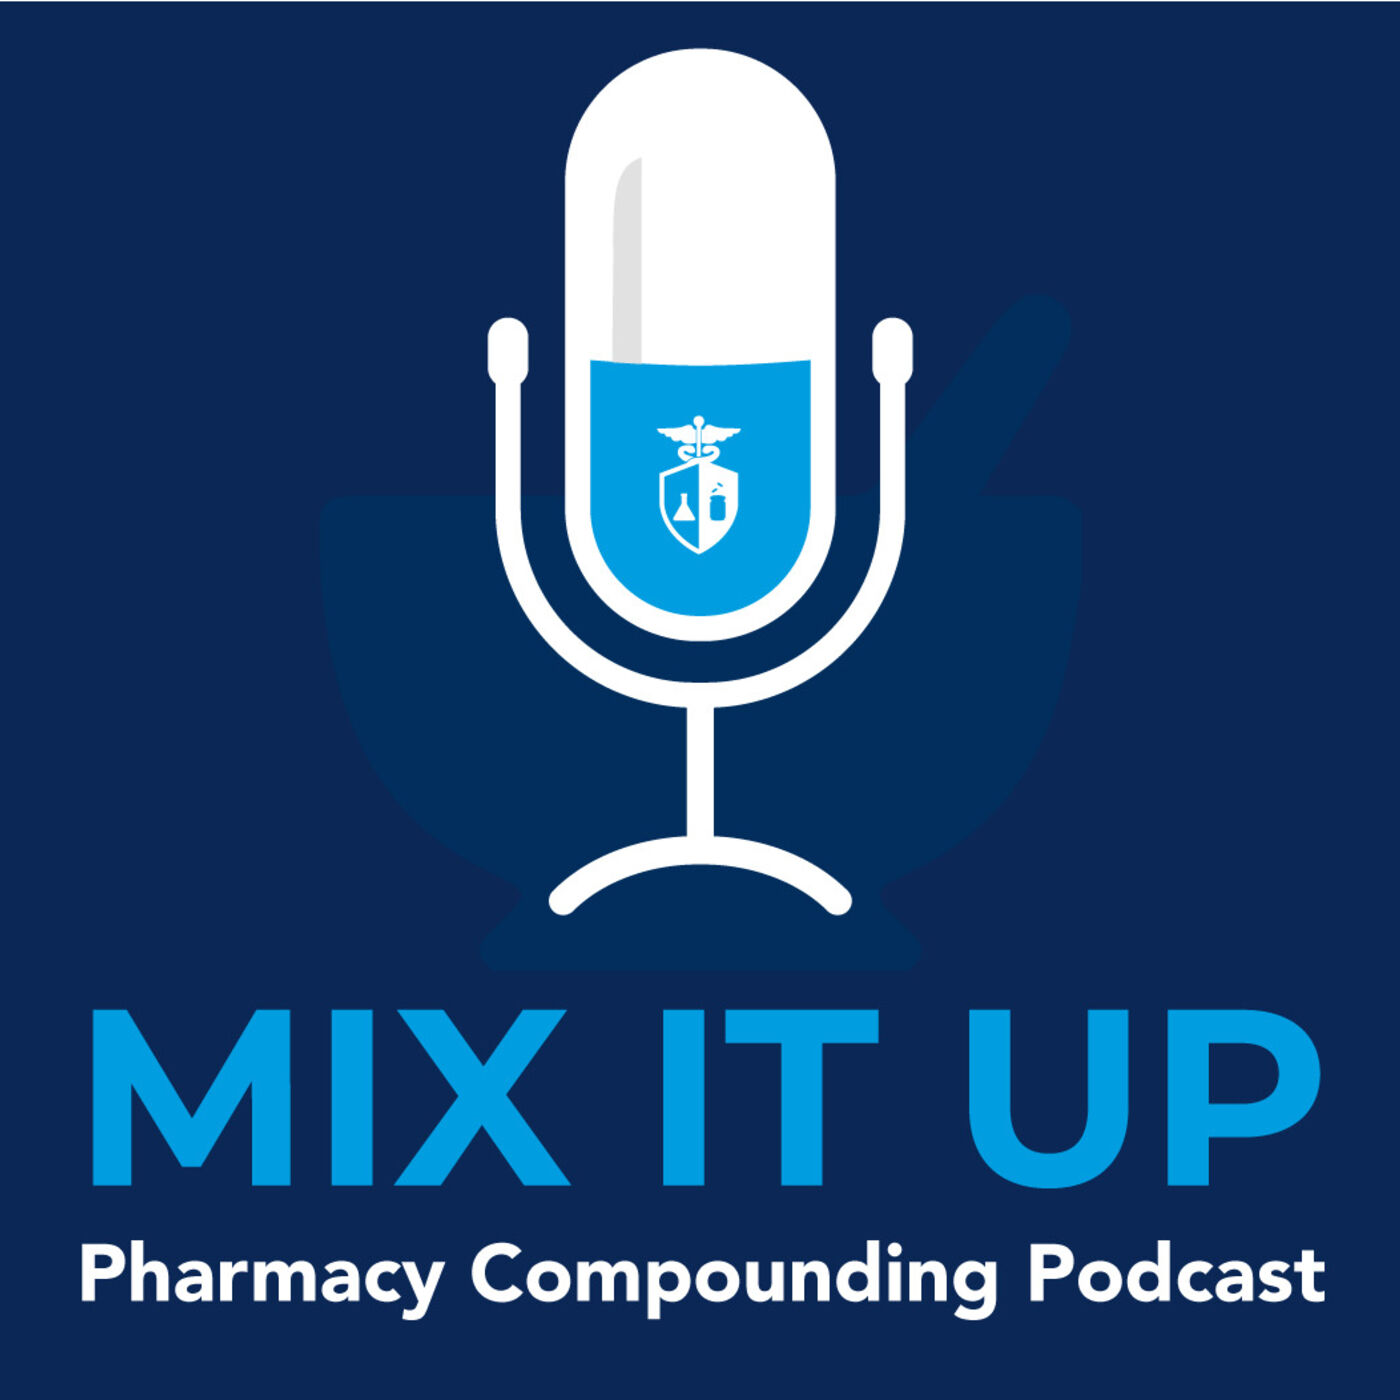 Episode 1.5 - The Transition from a Student to a Pharmacist: Interview with Jeanhie Kim, PharmD